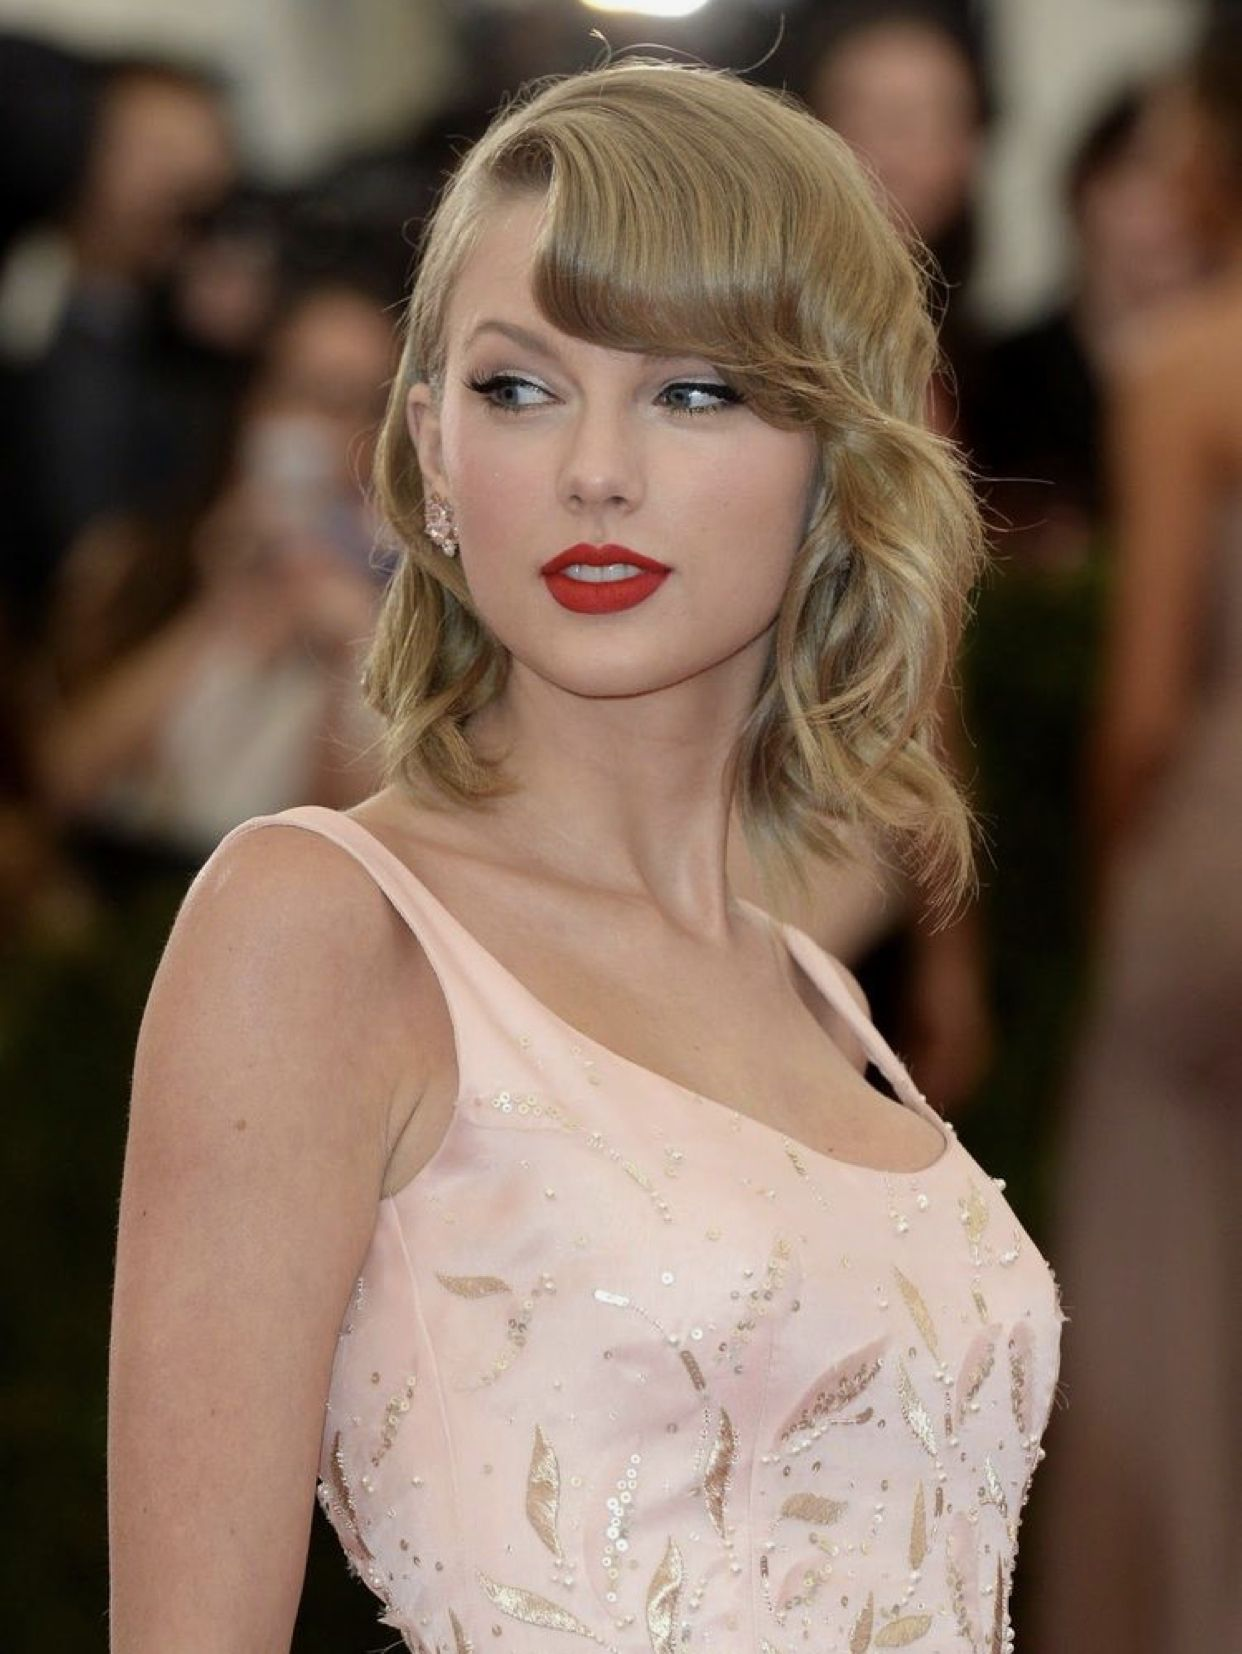 Angel Taylor swift 👼 | Taylor swift outfits, Taylor swift ...